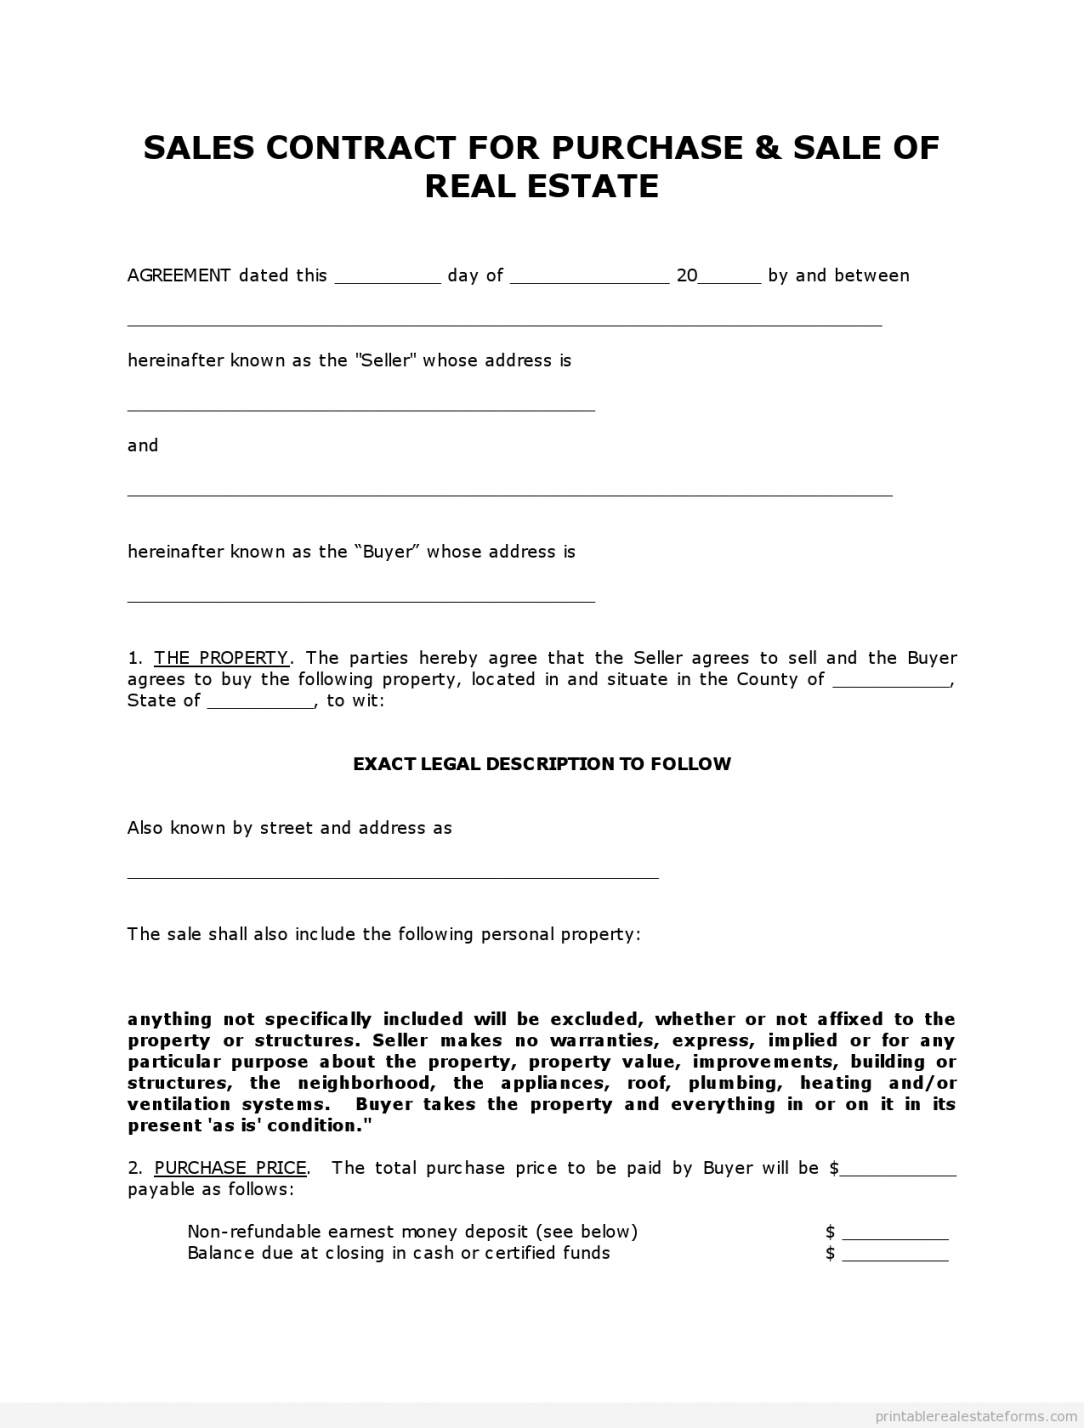 free get high quality printable simple land contract form editable land use agreement template example